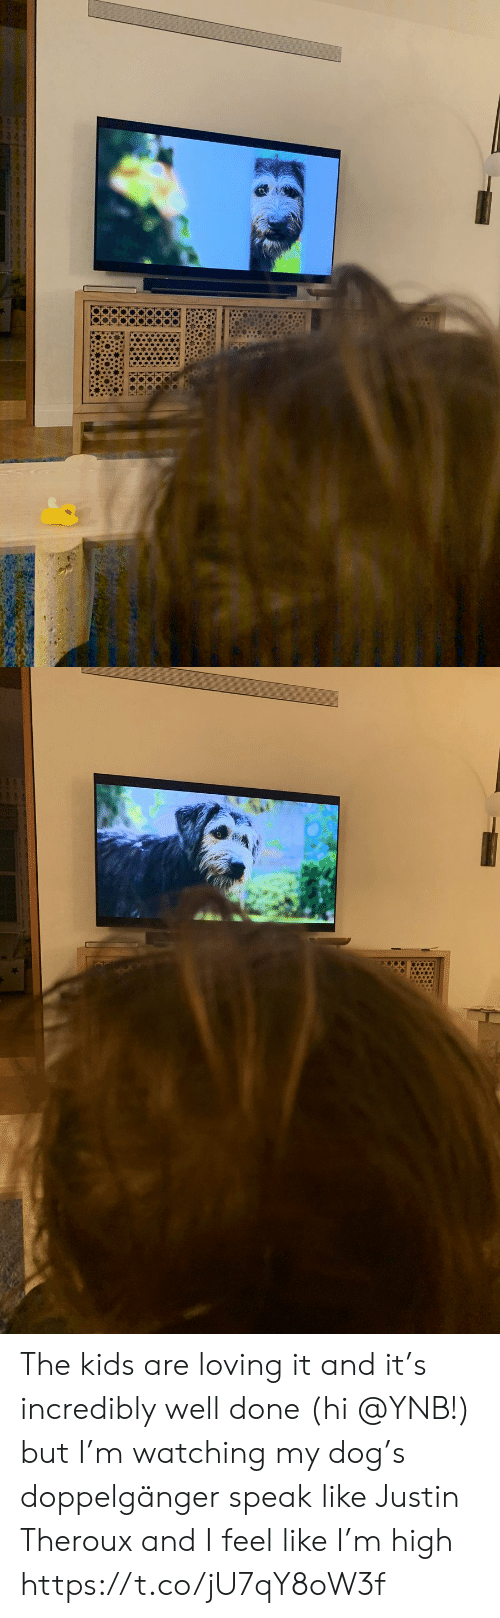 Incredibly: The kids are loving it and it's incredibly well done (hi @YNB!) but I'm watching my dog's doppelgänger speak like Justin Theroux and I feel like I'm high https://t.co/jU7qY8oW3f